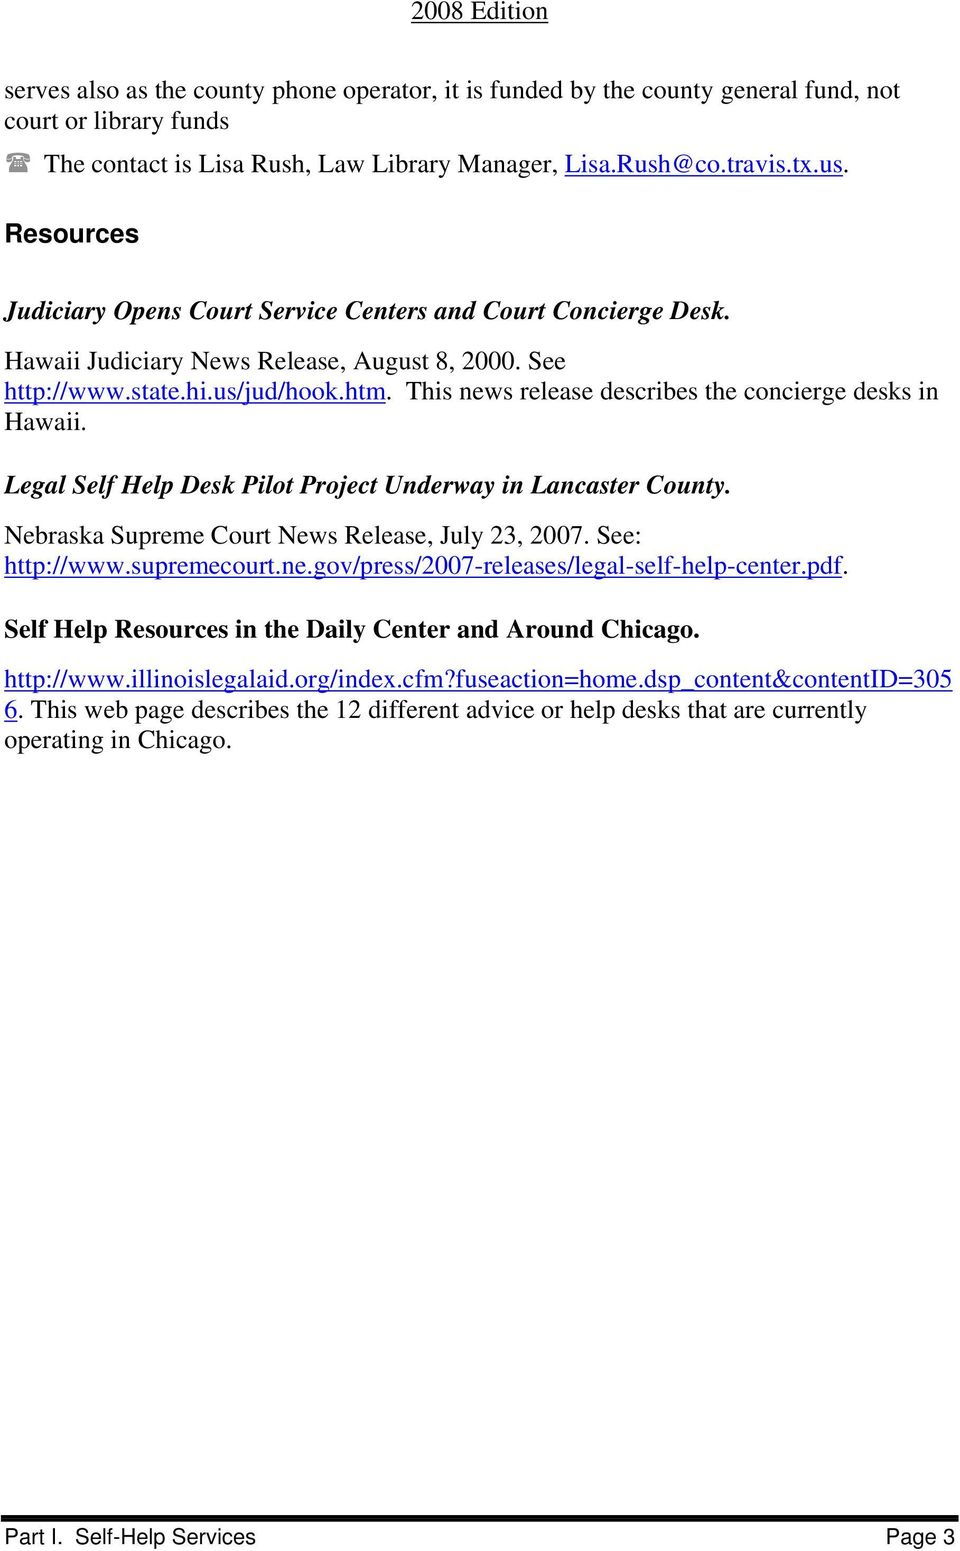 us/jud/hook.htm. This news release describes the concierge desks in Hawaii. Legal Self Help Desk Pilot Project Underway in Lancaster County. Nebraska Supreme Court News Release, July 23, 2007.